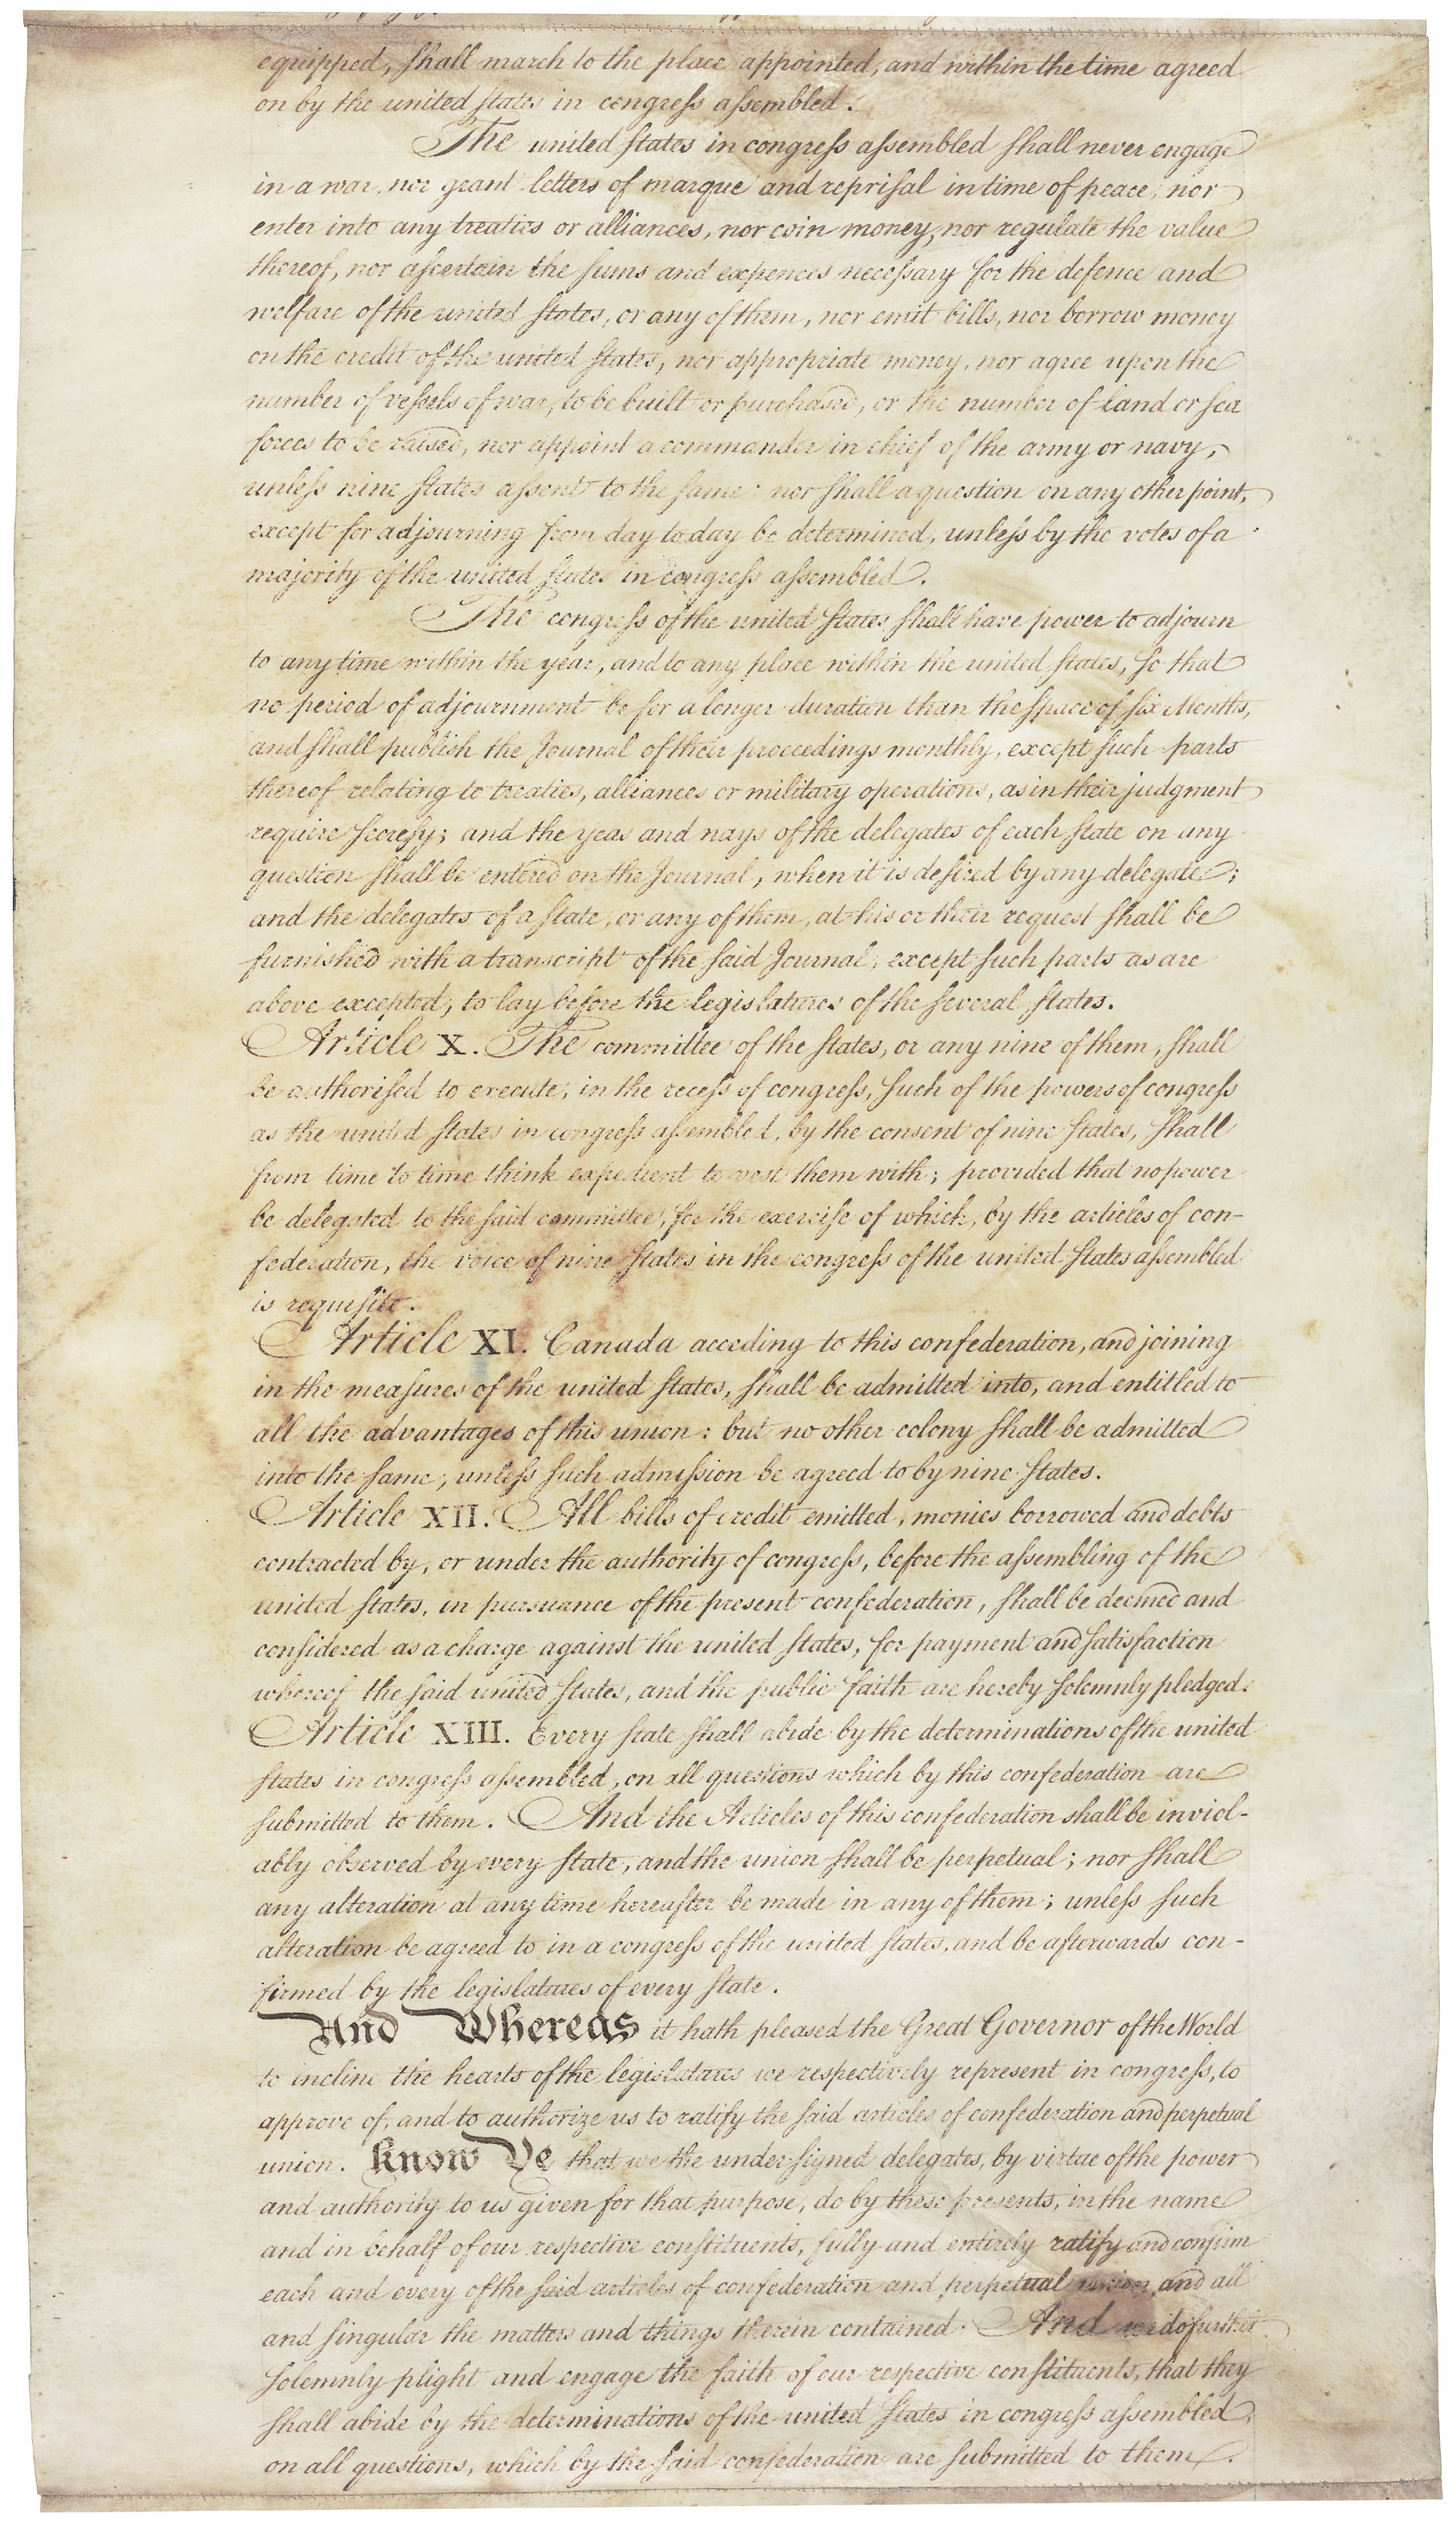 articles of confederation To all to whom these presents shall come, we the under signed delegates of the states affixed to our names, send greeting whereas the delegates of the united states of america, in congress assembled, did, on the 15th day of november, in the year of our lord one thousand seven hundred and seventy seven, and in the second year of the.